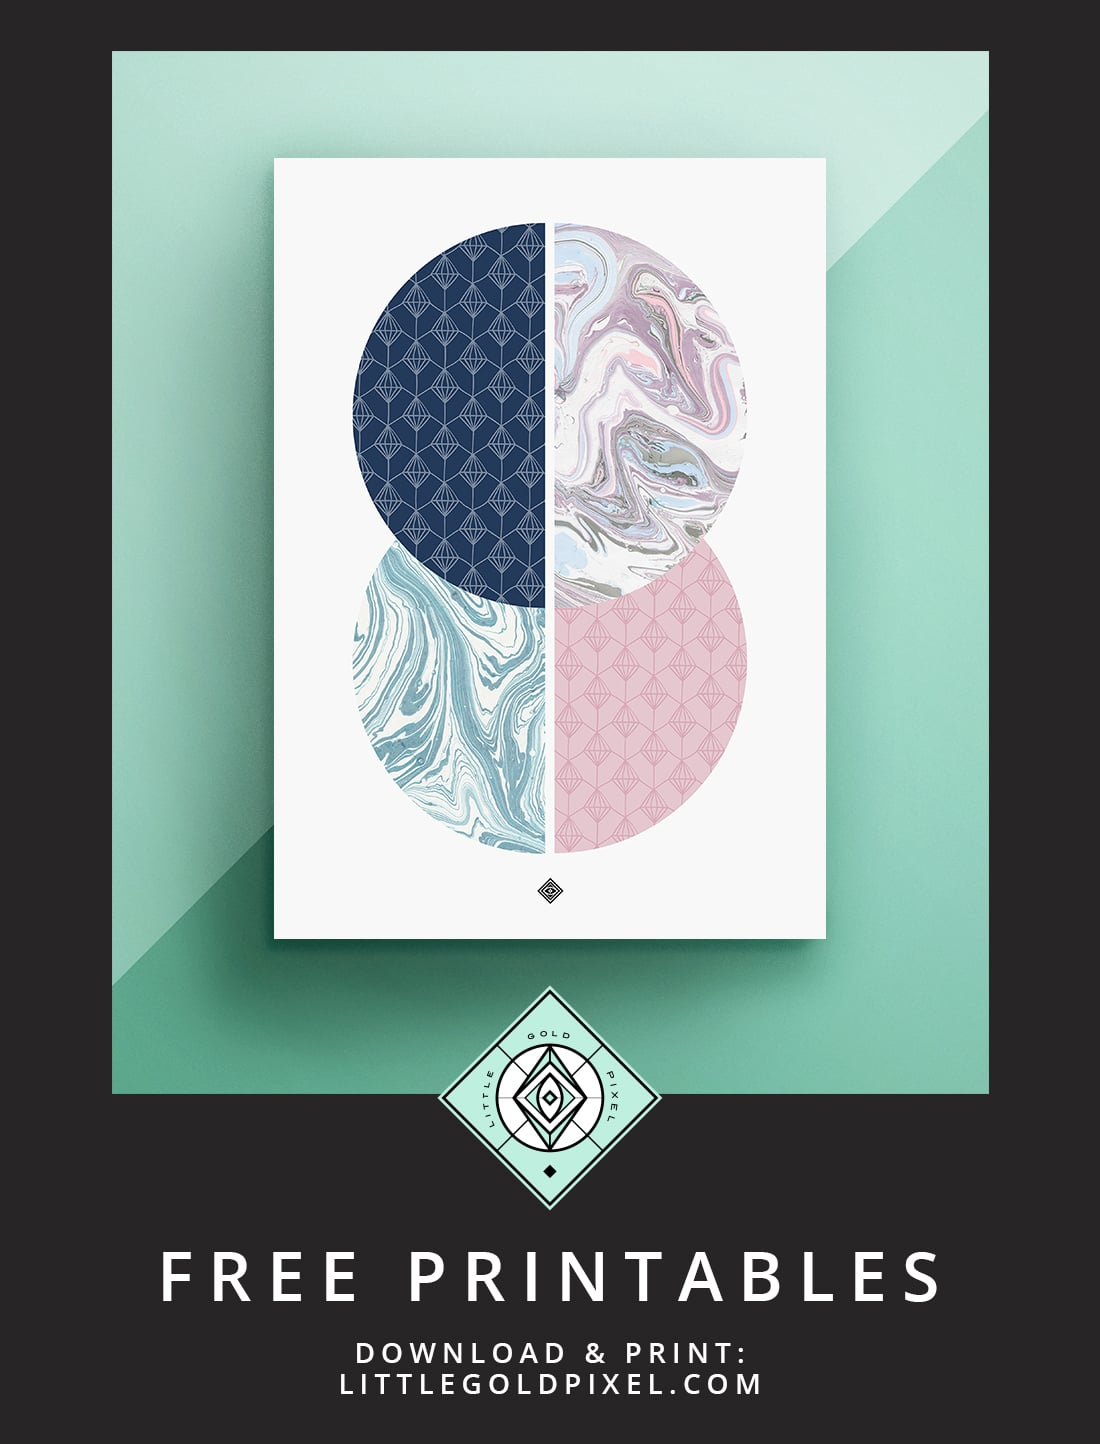 Download this marble circles free printable as part of my Freebie Friday series. Mid mod & glam. Print & hang today!